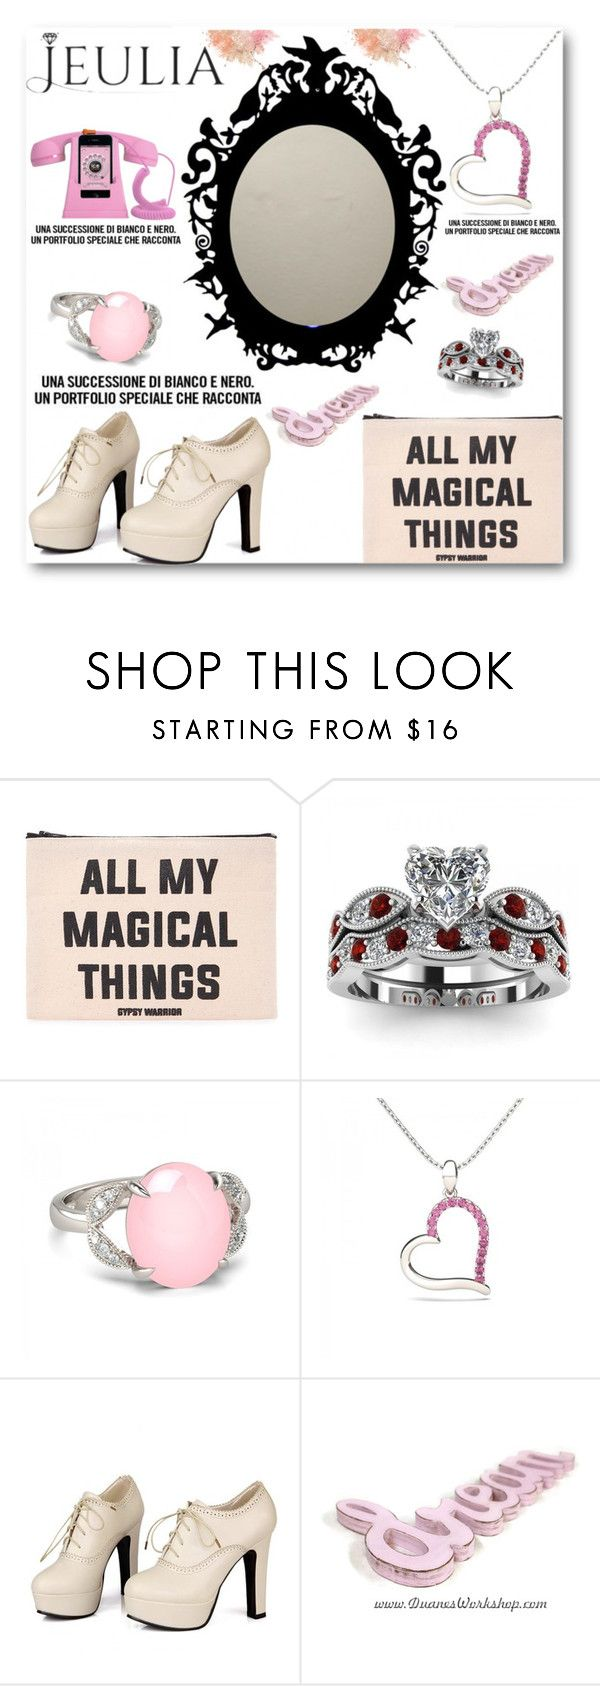 """""""Dream"""" by angelstar92 ❤ liked on Polyvore featuring Forever 21, Sidewalk, women's clothing, women's fashion, women, female, woman, misses, juniors and dream"""